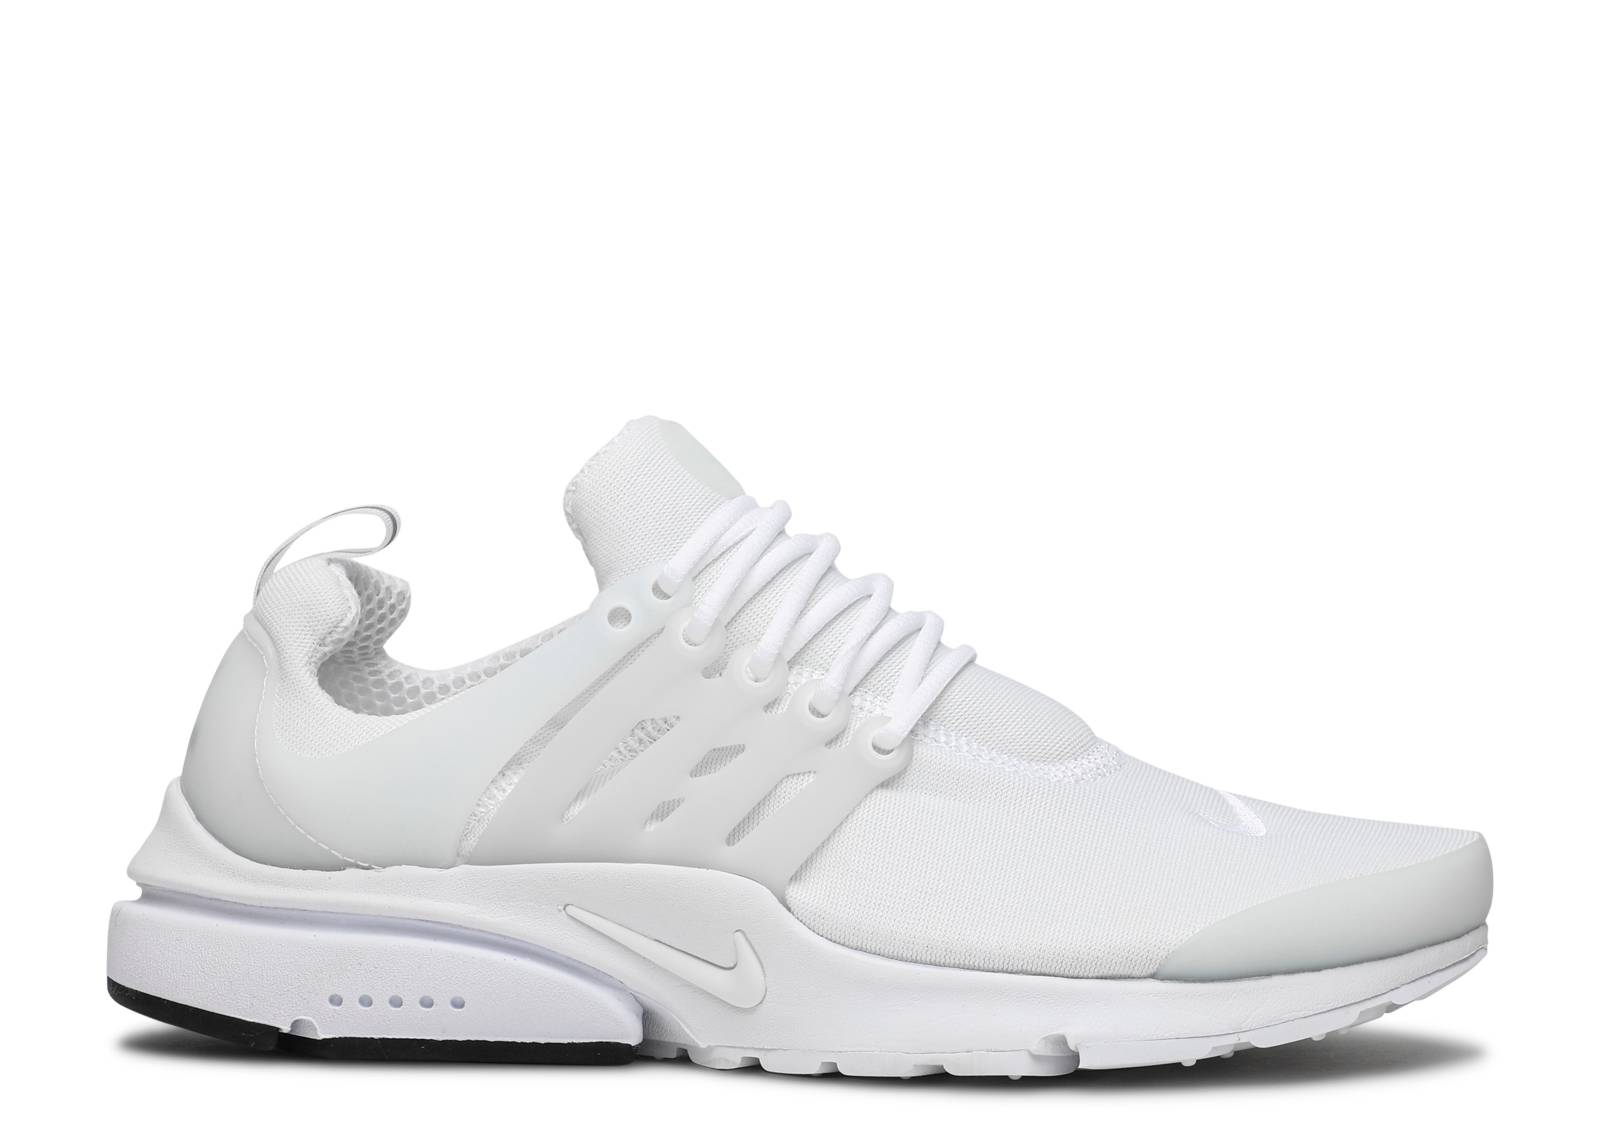 cheap for discount 1a82a dc29c Presto - Nike Running - Nike | Flight Club